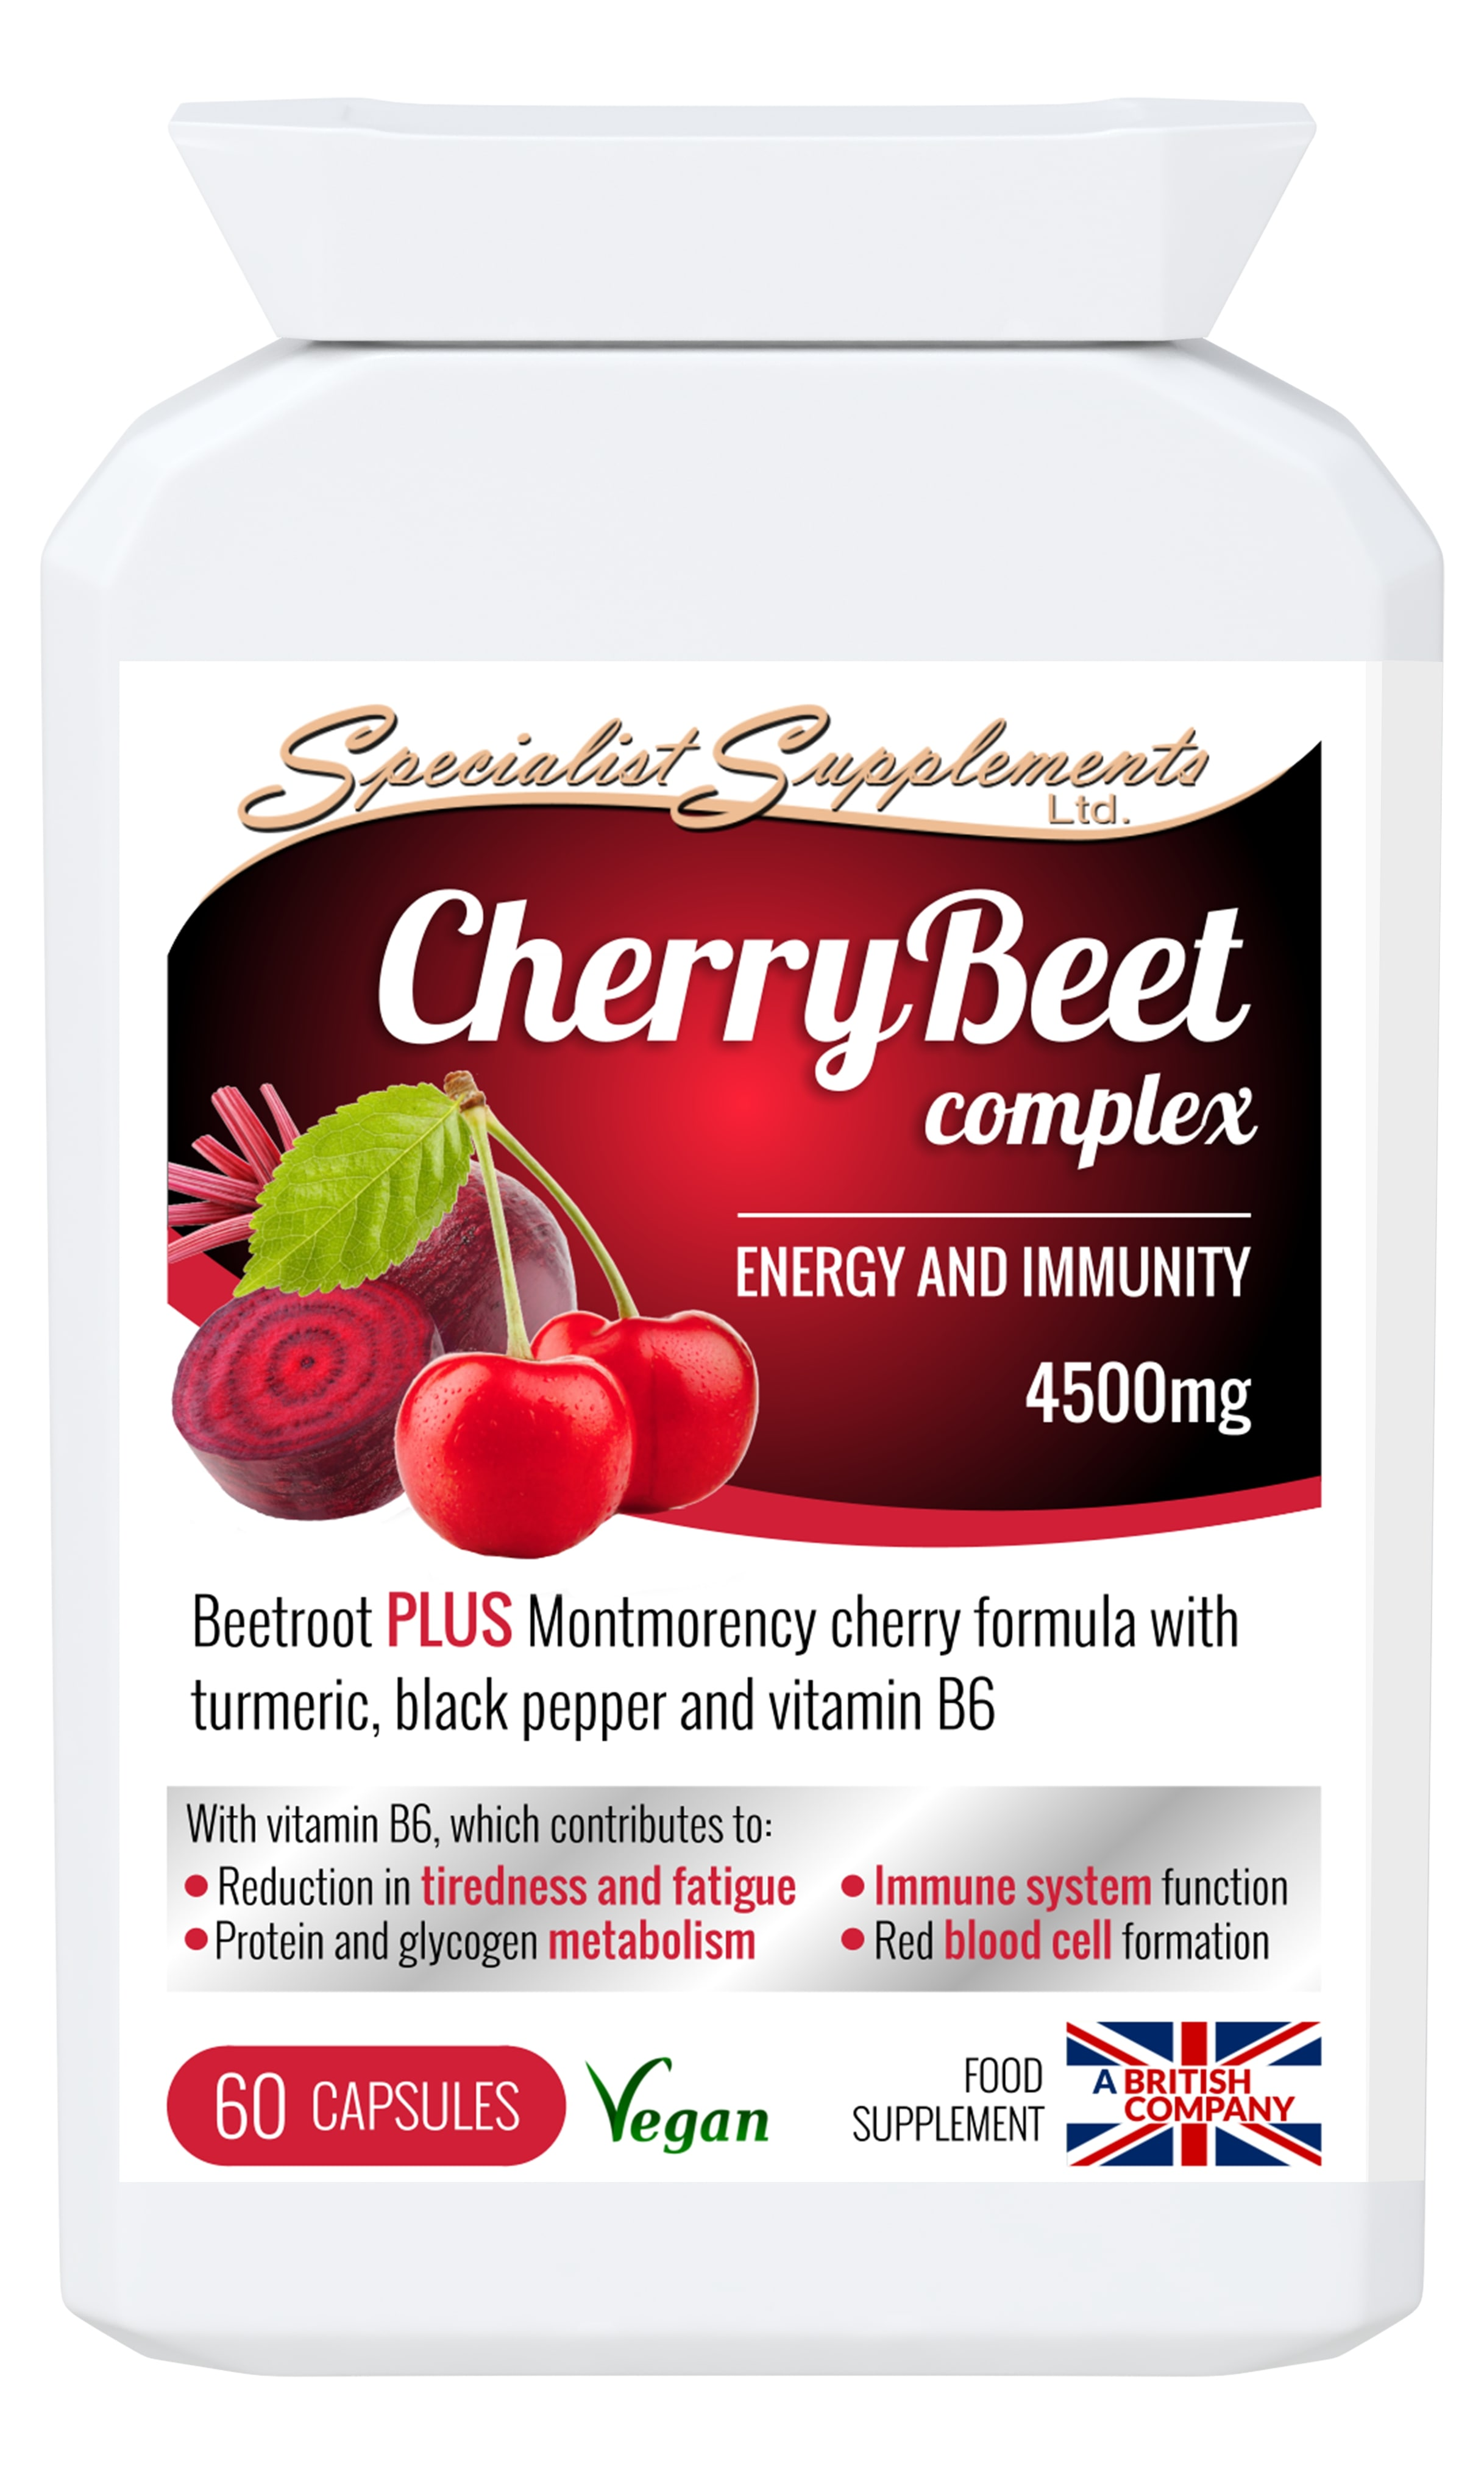 CherryBeet - wholesale combination cherry and beetroot capsules